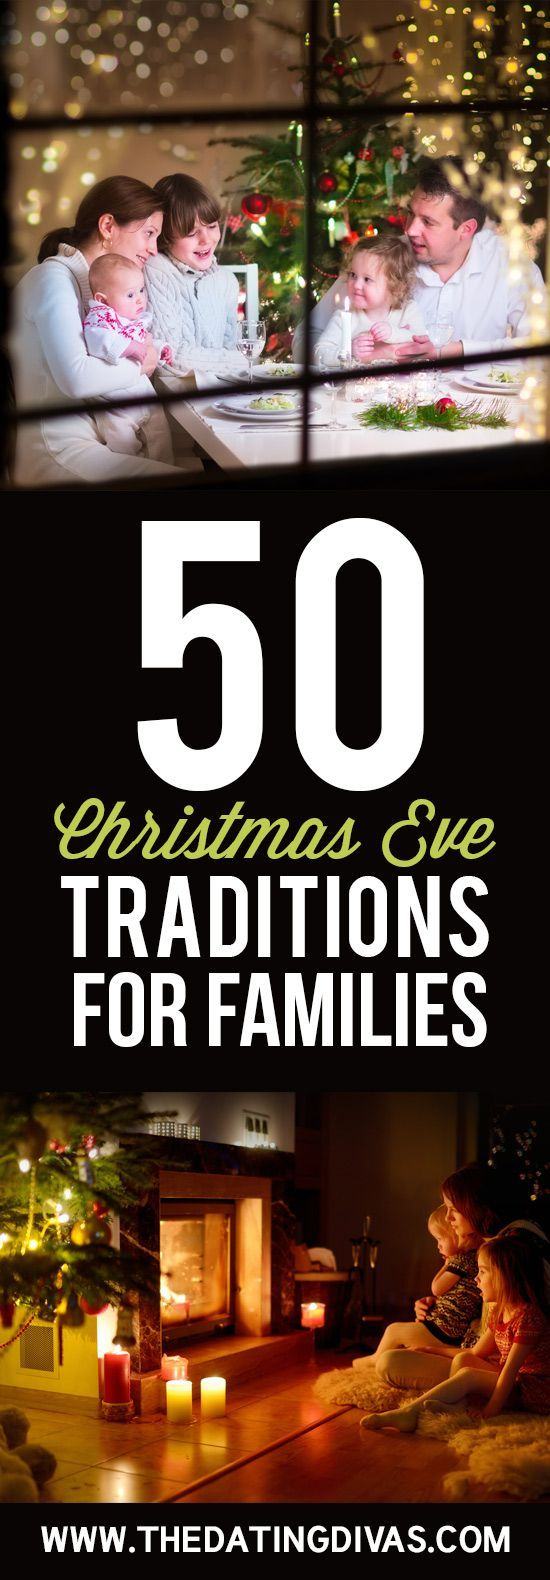 Christmas eve worship service ideas - 50 Christmas Eve Traditions For Families